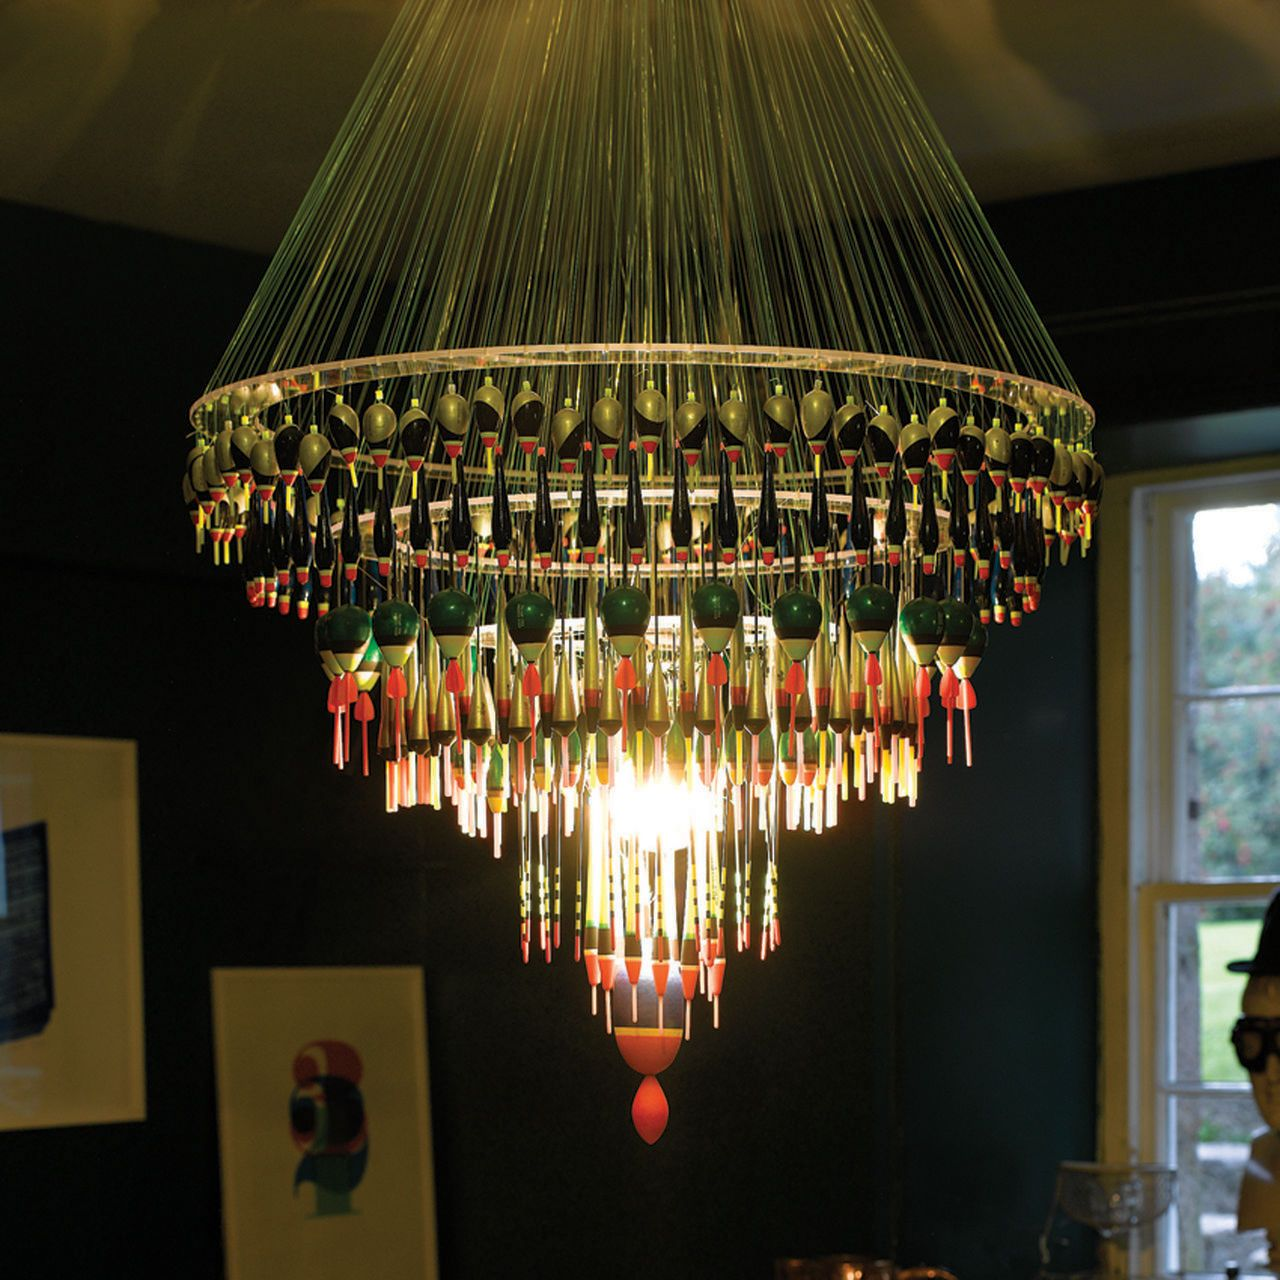 These Creative Man Cave Ideas Will Help You Relax In Style: Enormous Chandelier Made By Hand From Fishing Floats